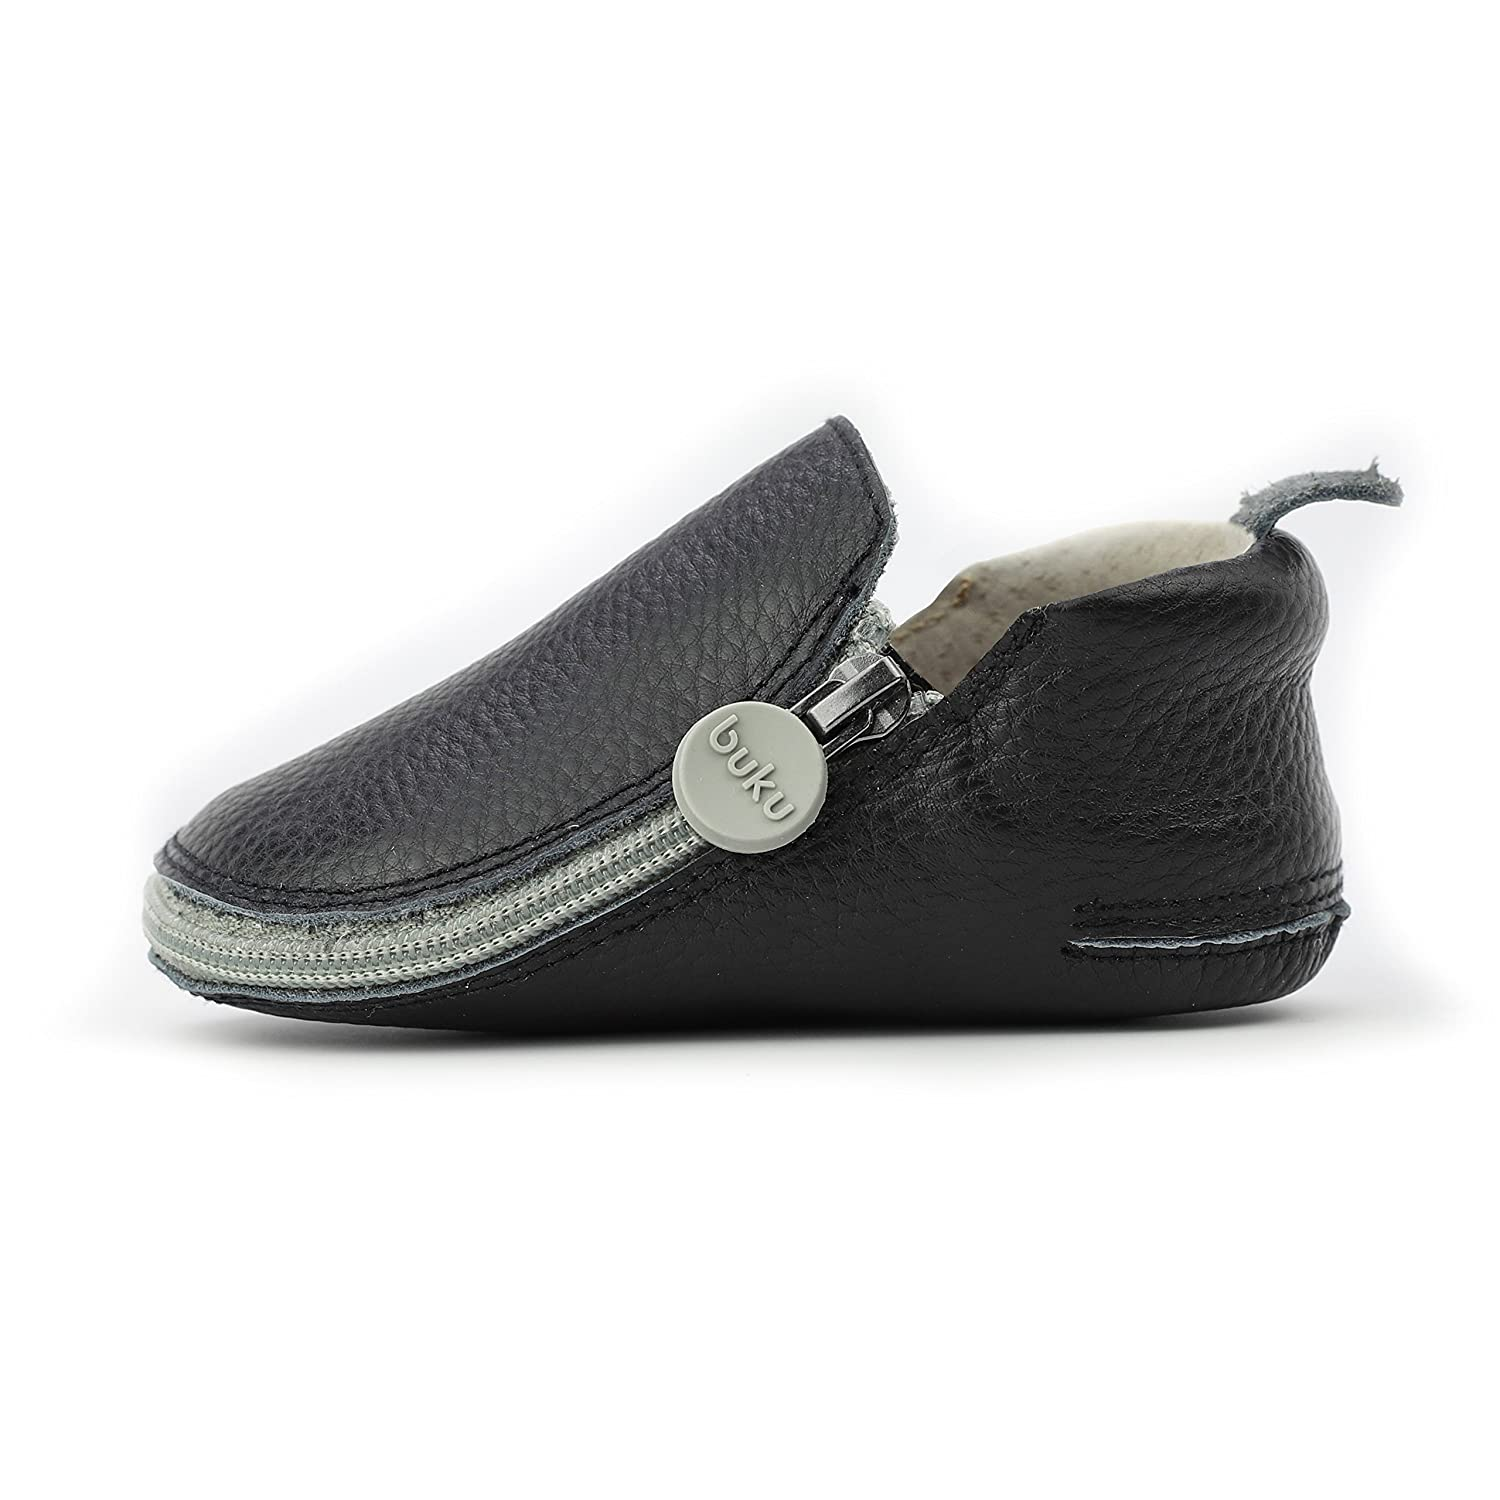 d8764a5a313a2 Buku Babies Genuine Leather Baby Shoes by Girls & Boys Walkers Crib Shoes  Moccasins Booties